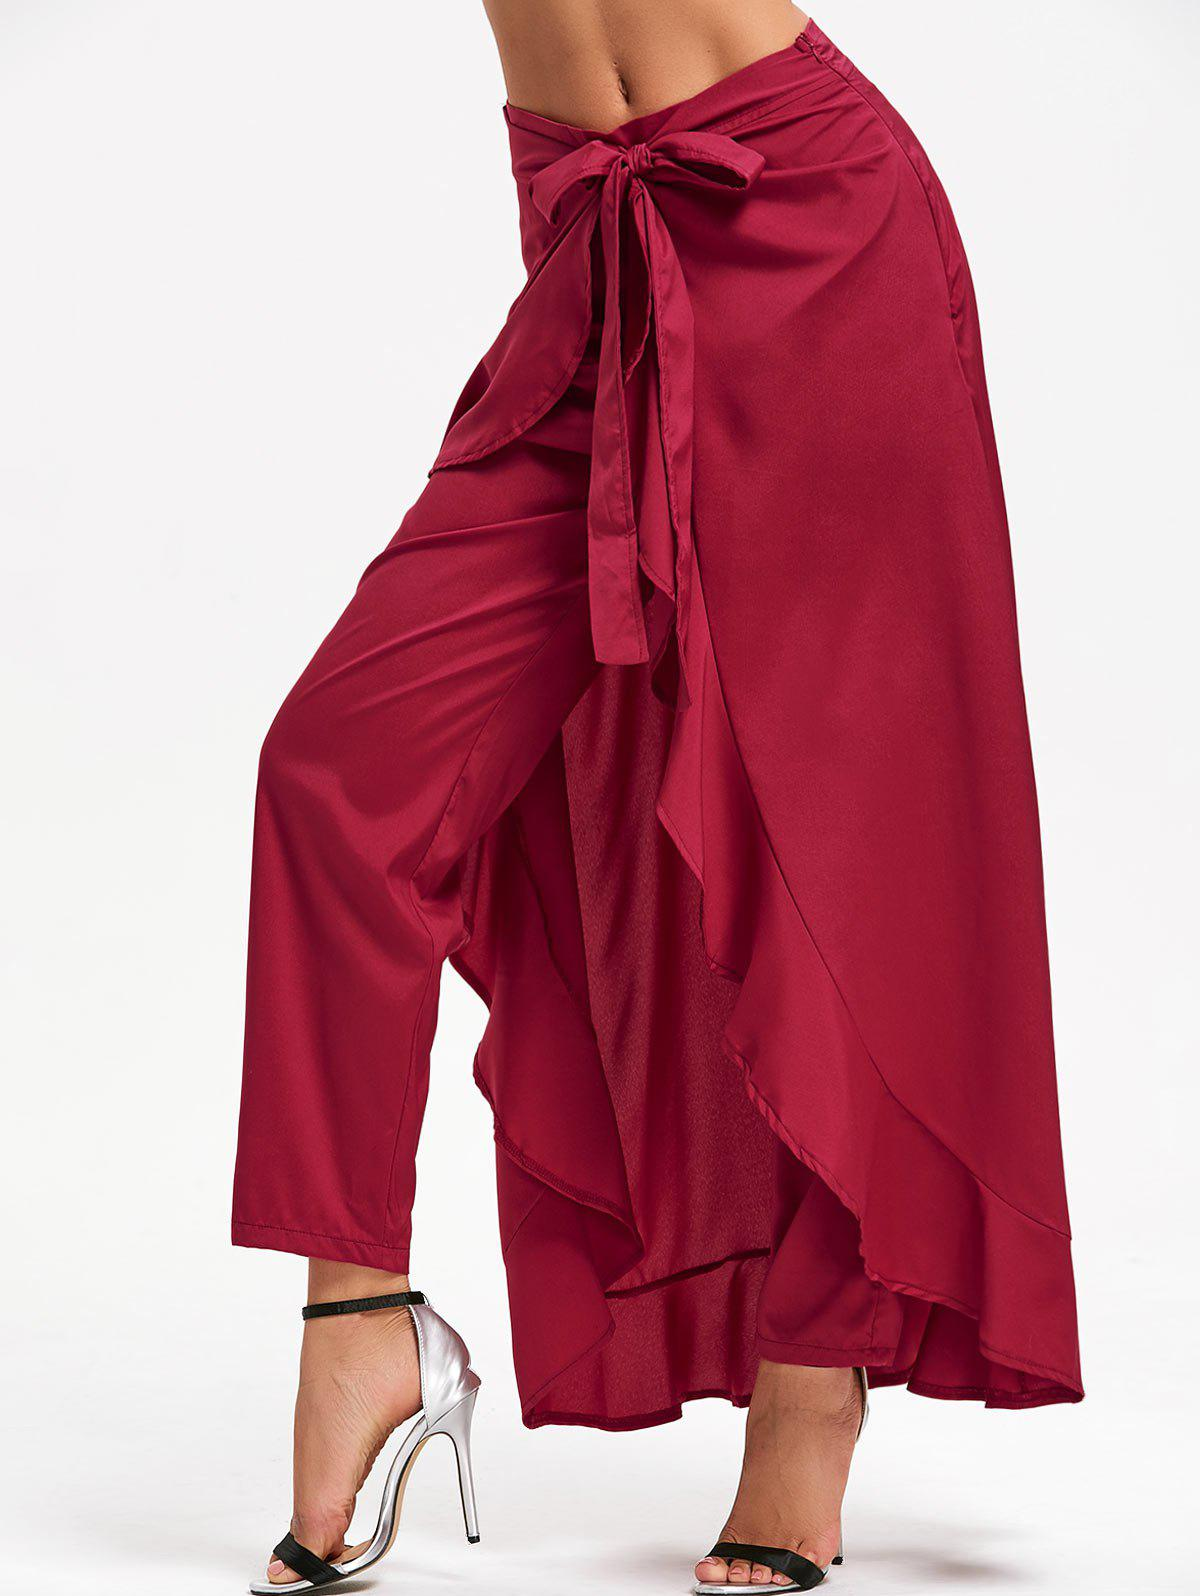 Tie Front Ruffle Skirted Pants - WINE RED S